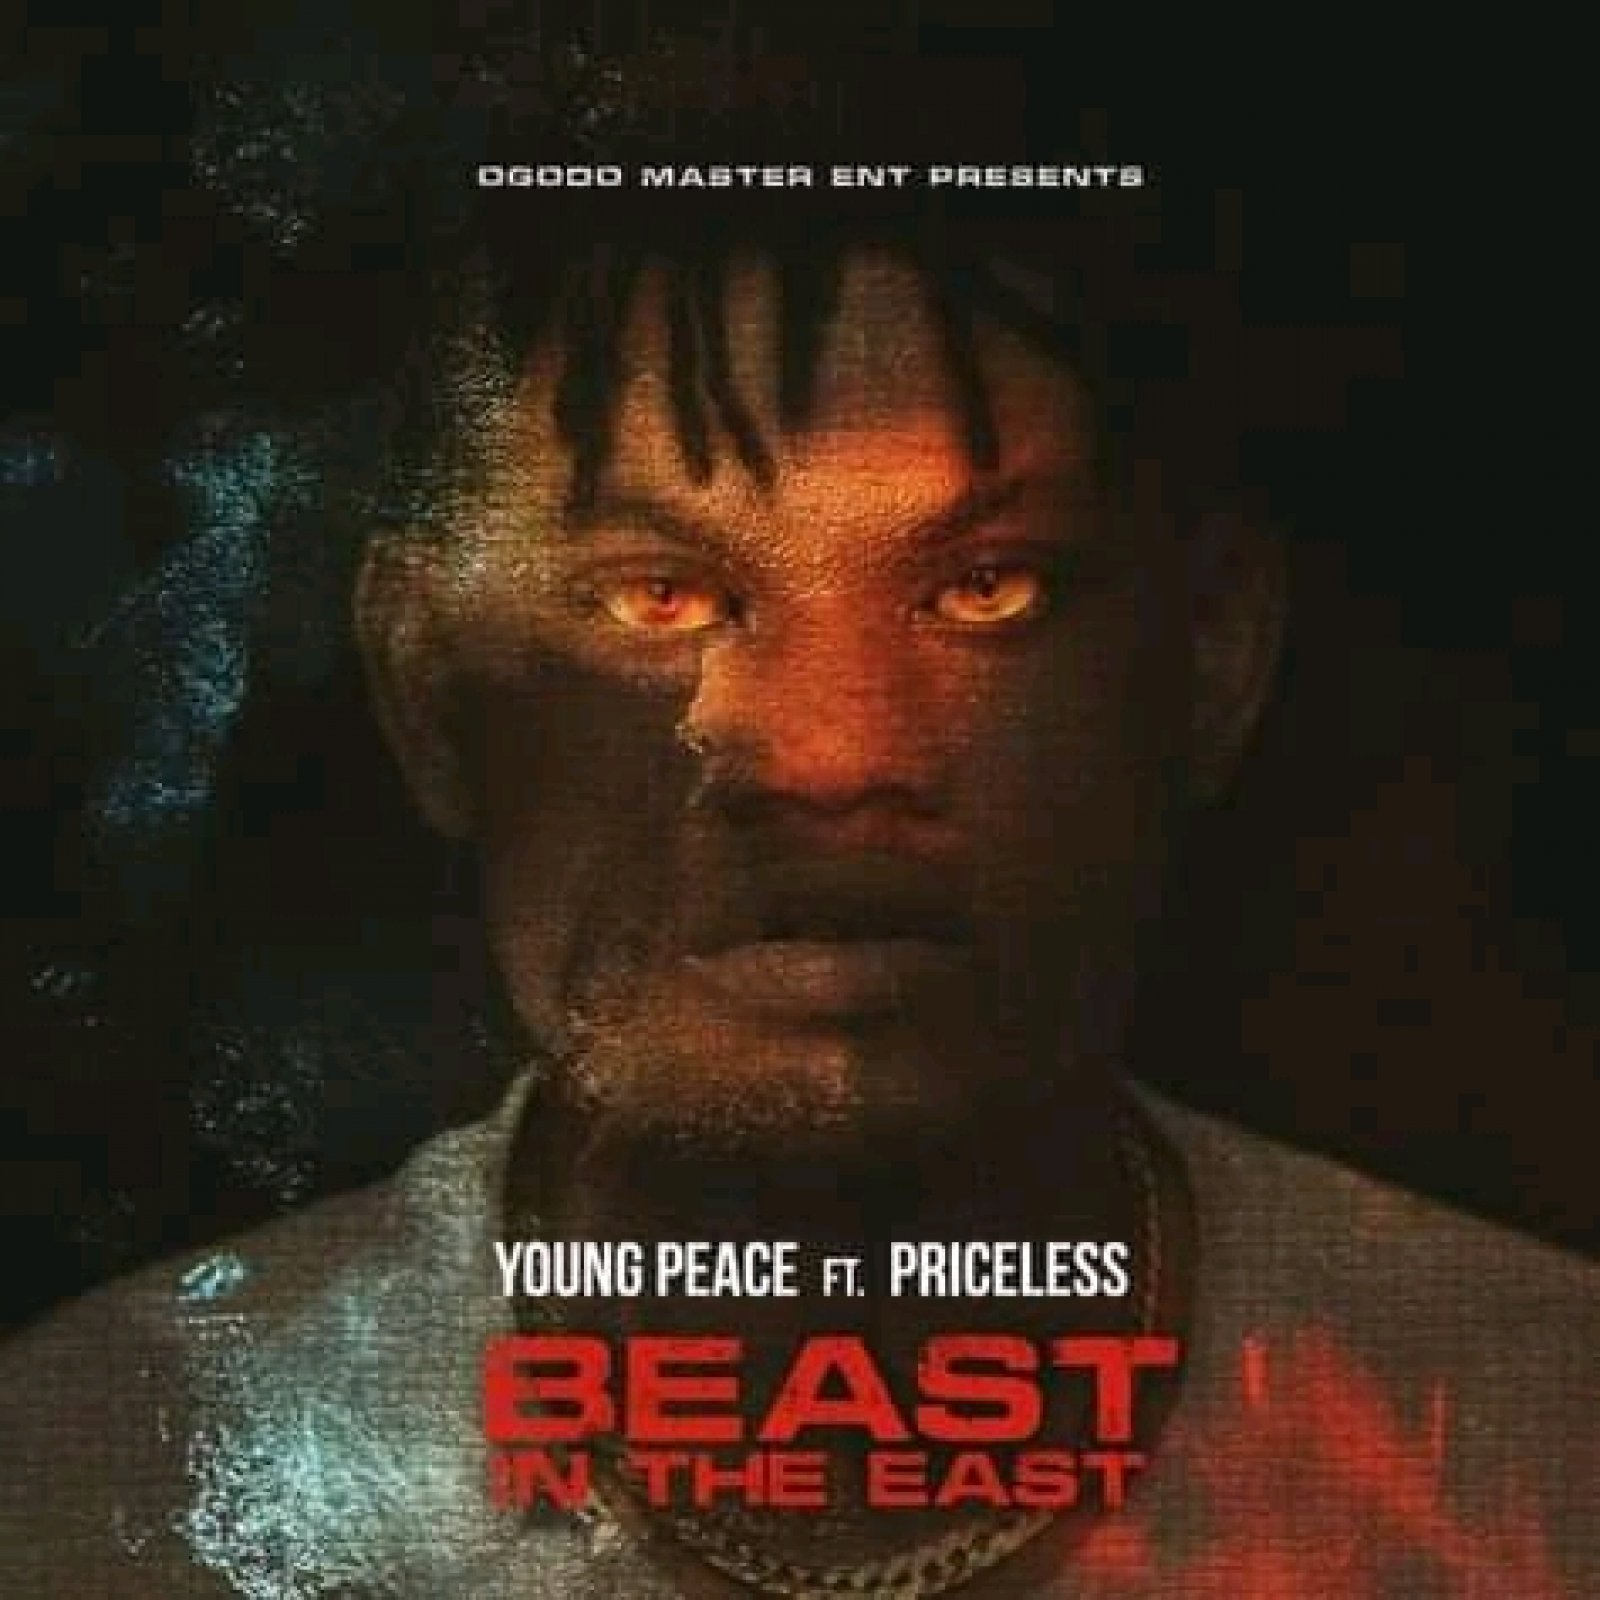 Young Peace, Priceless, Beast in the East